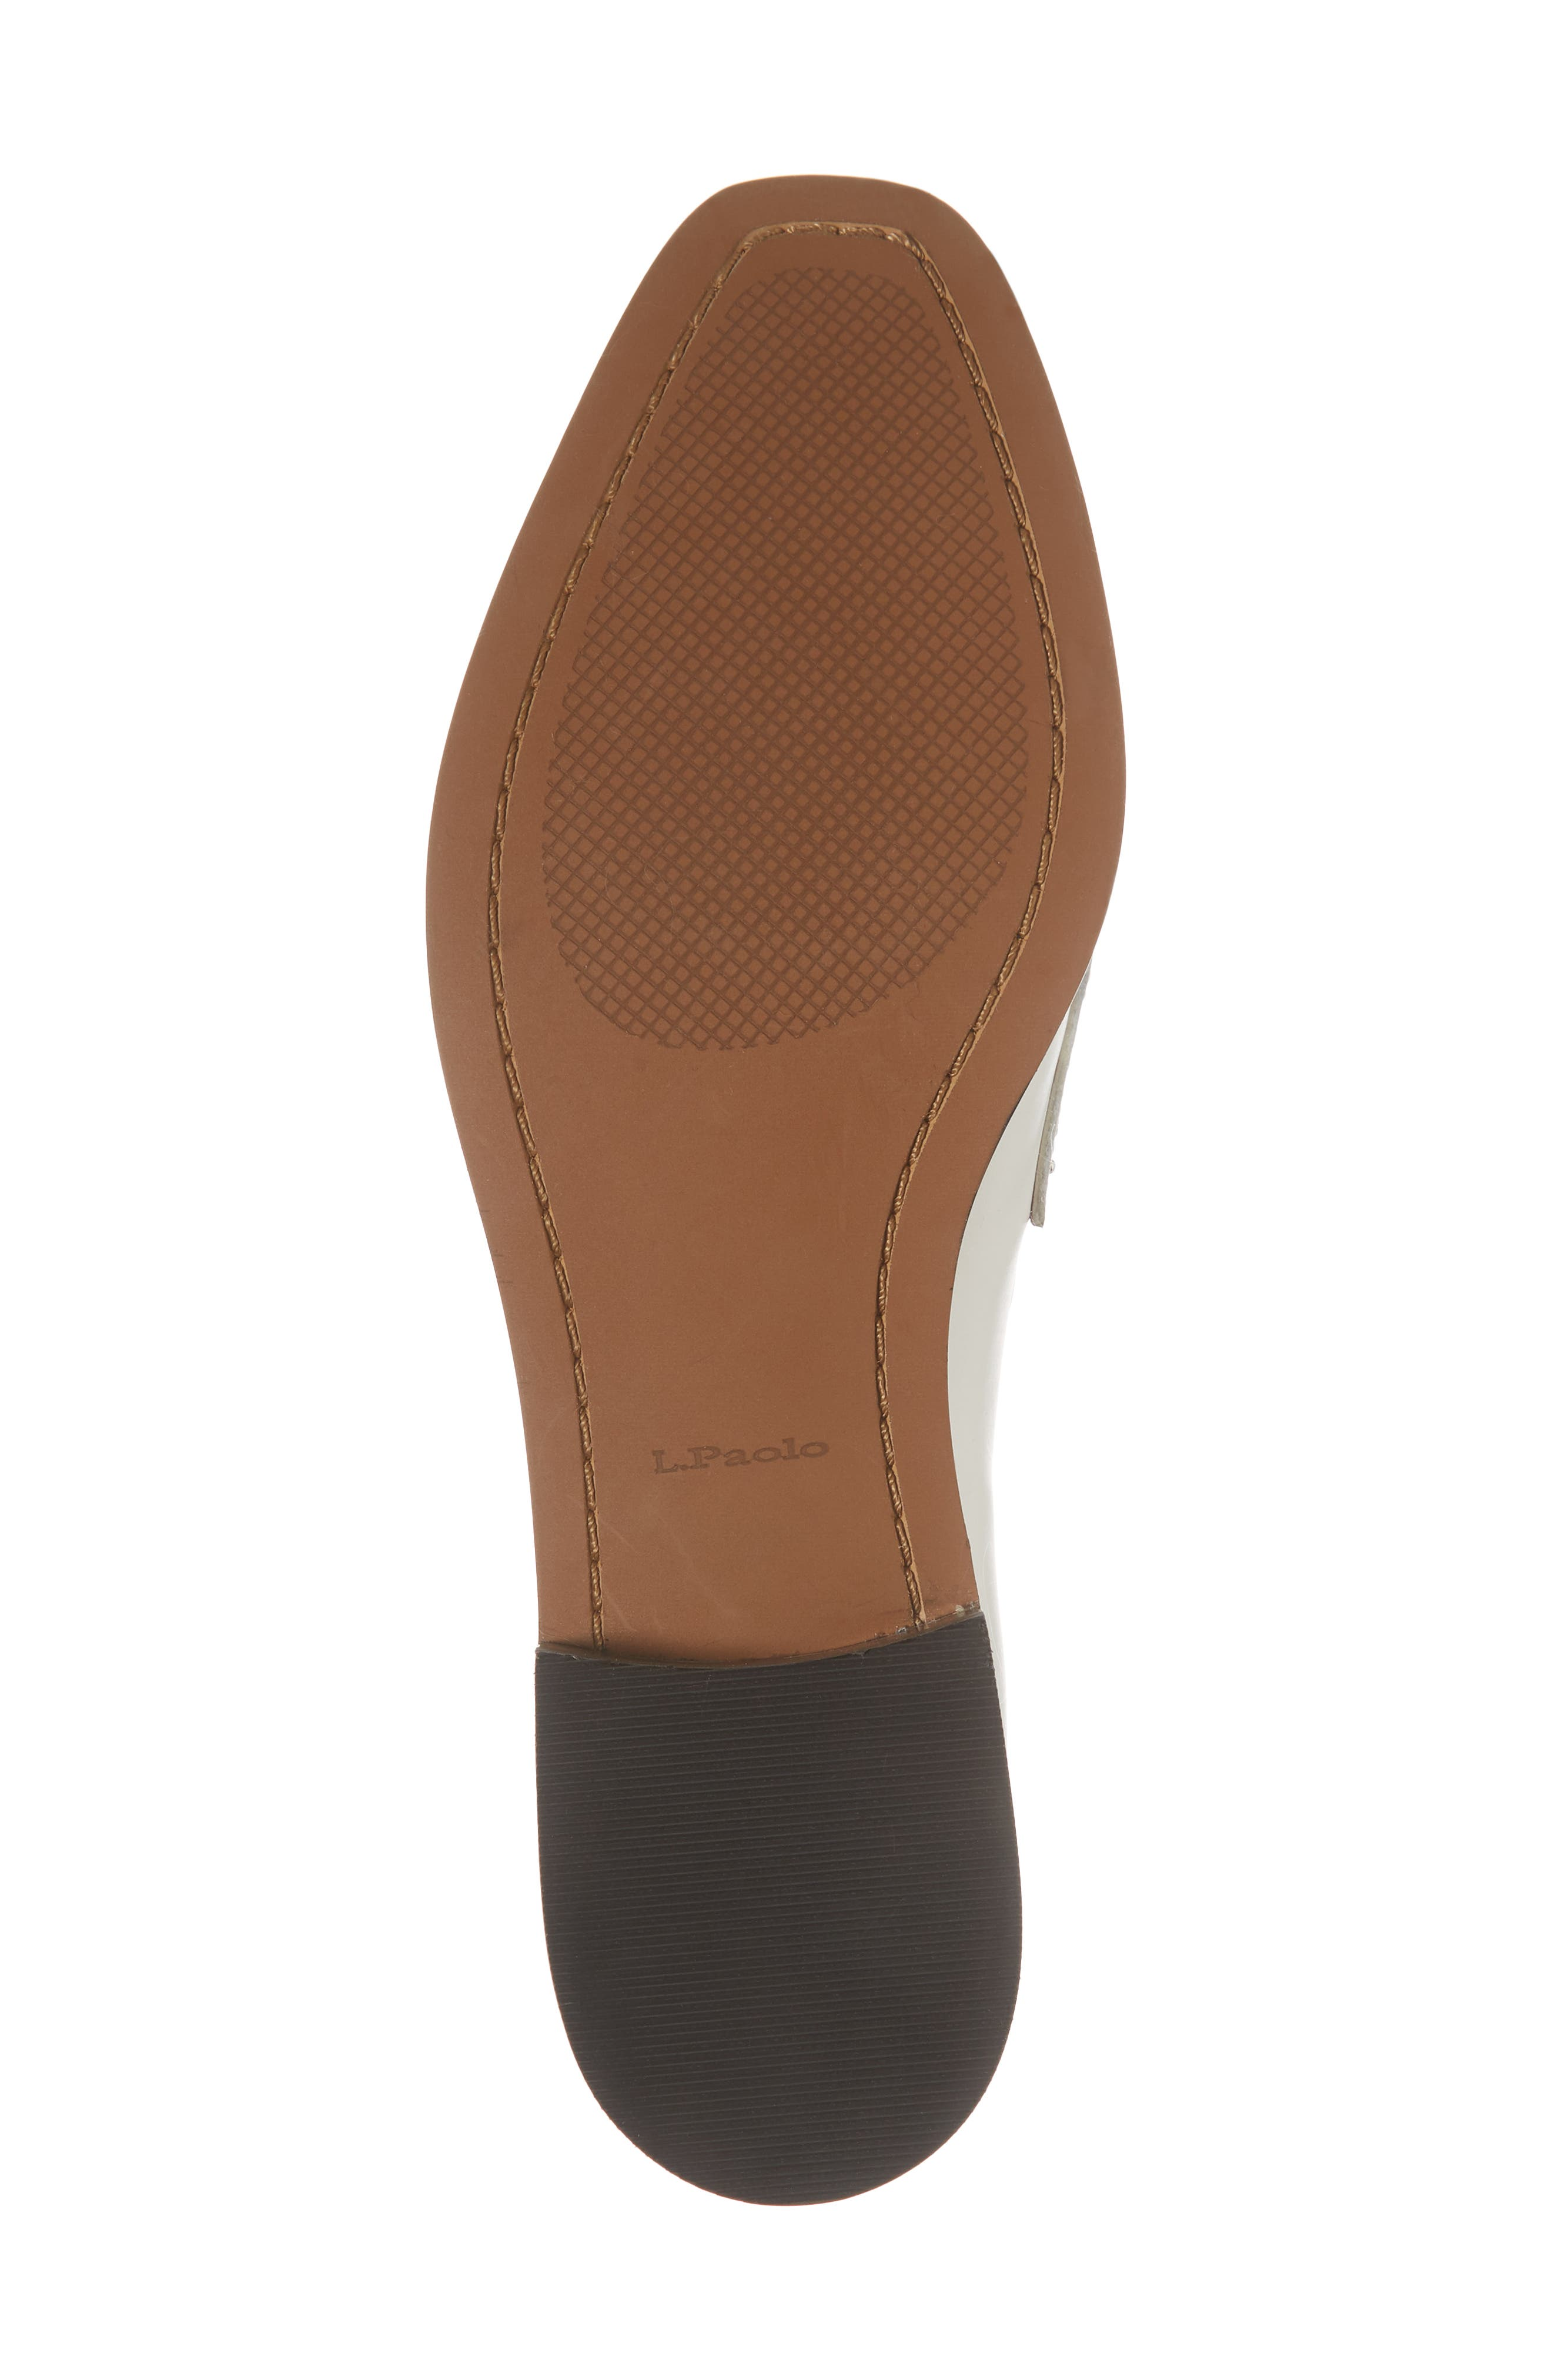 Tara Penny Loafer,                             Alternate thumbnail 6, color,                             Off White Leather